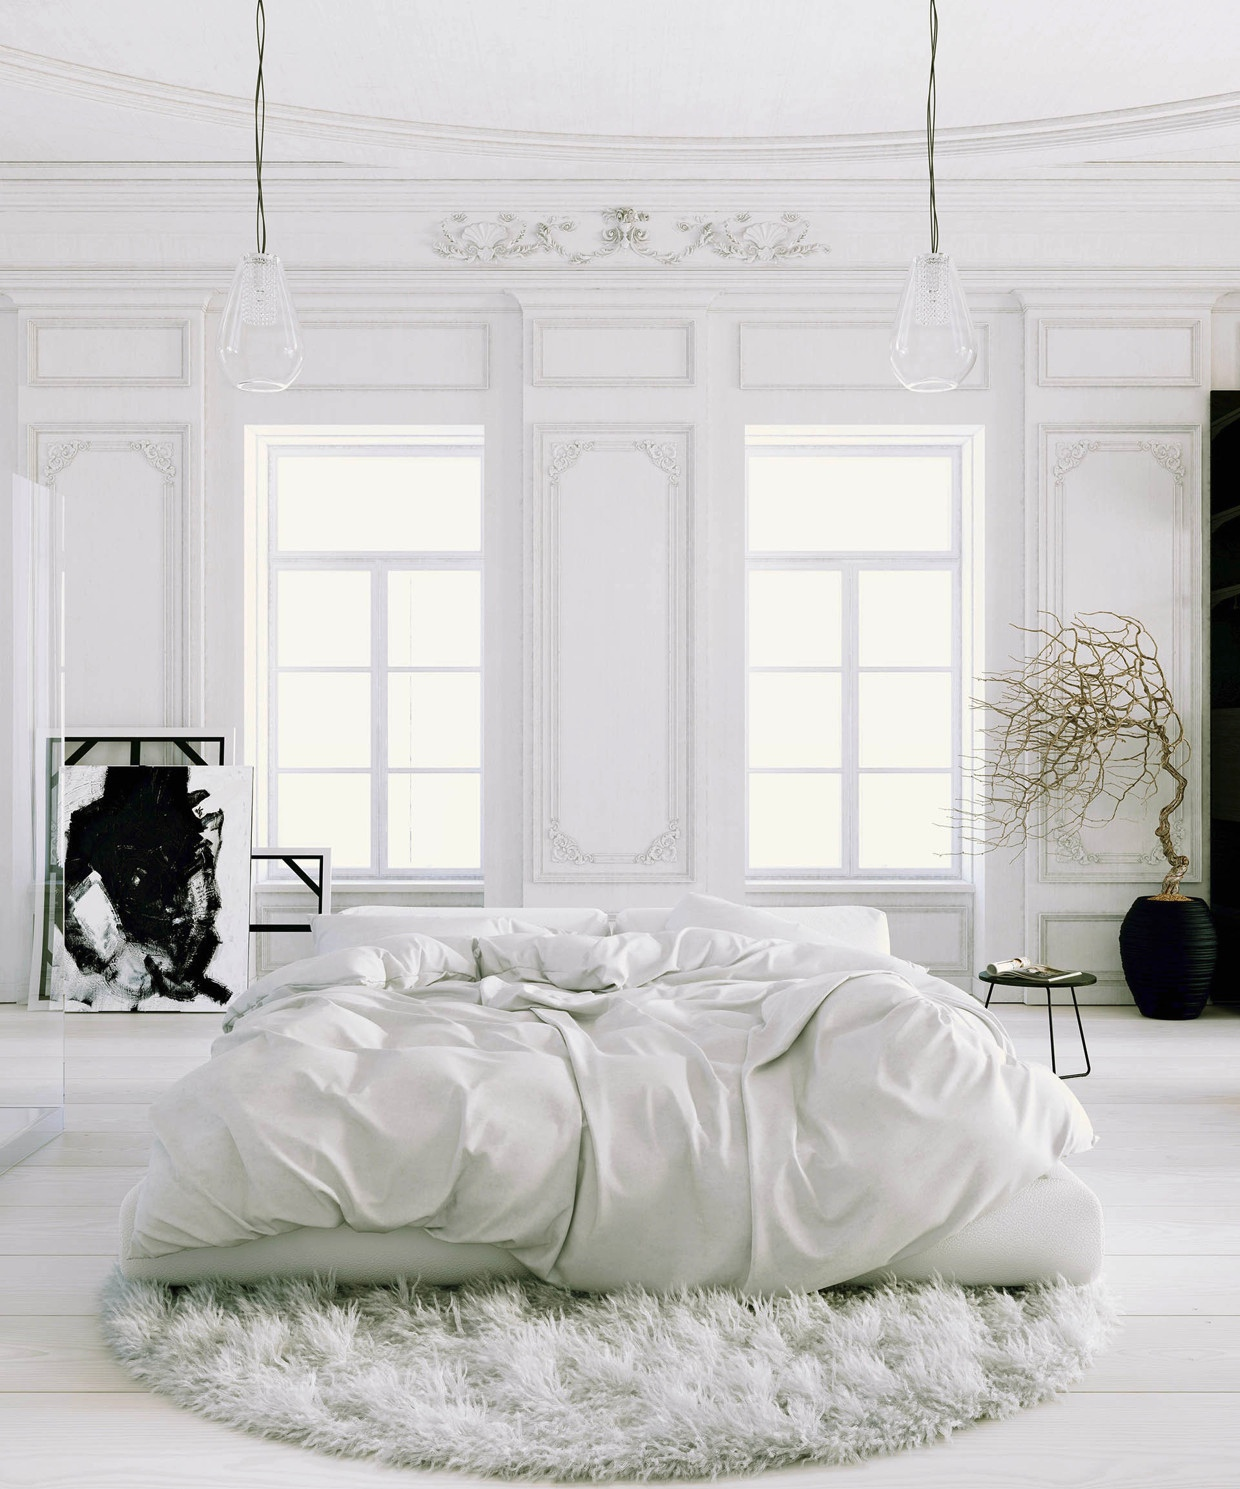 Parisian Apartment Soft White Bedroom With Black Accents And Potted